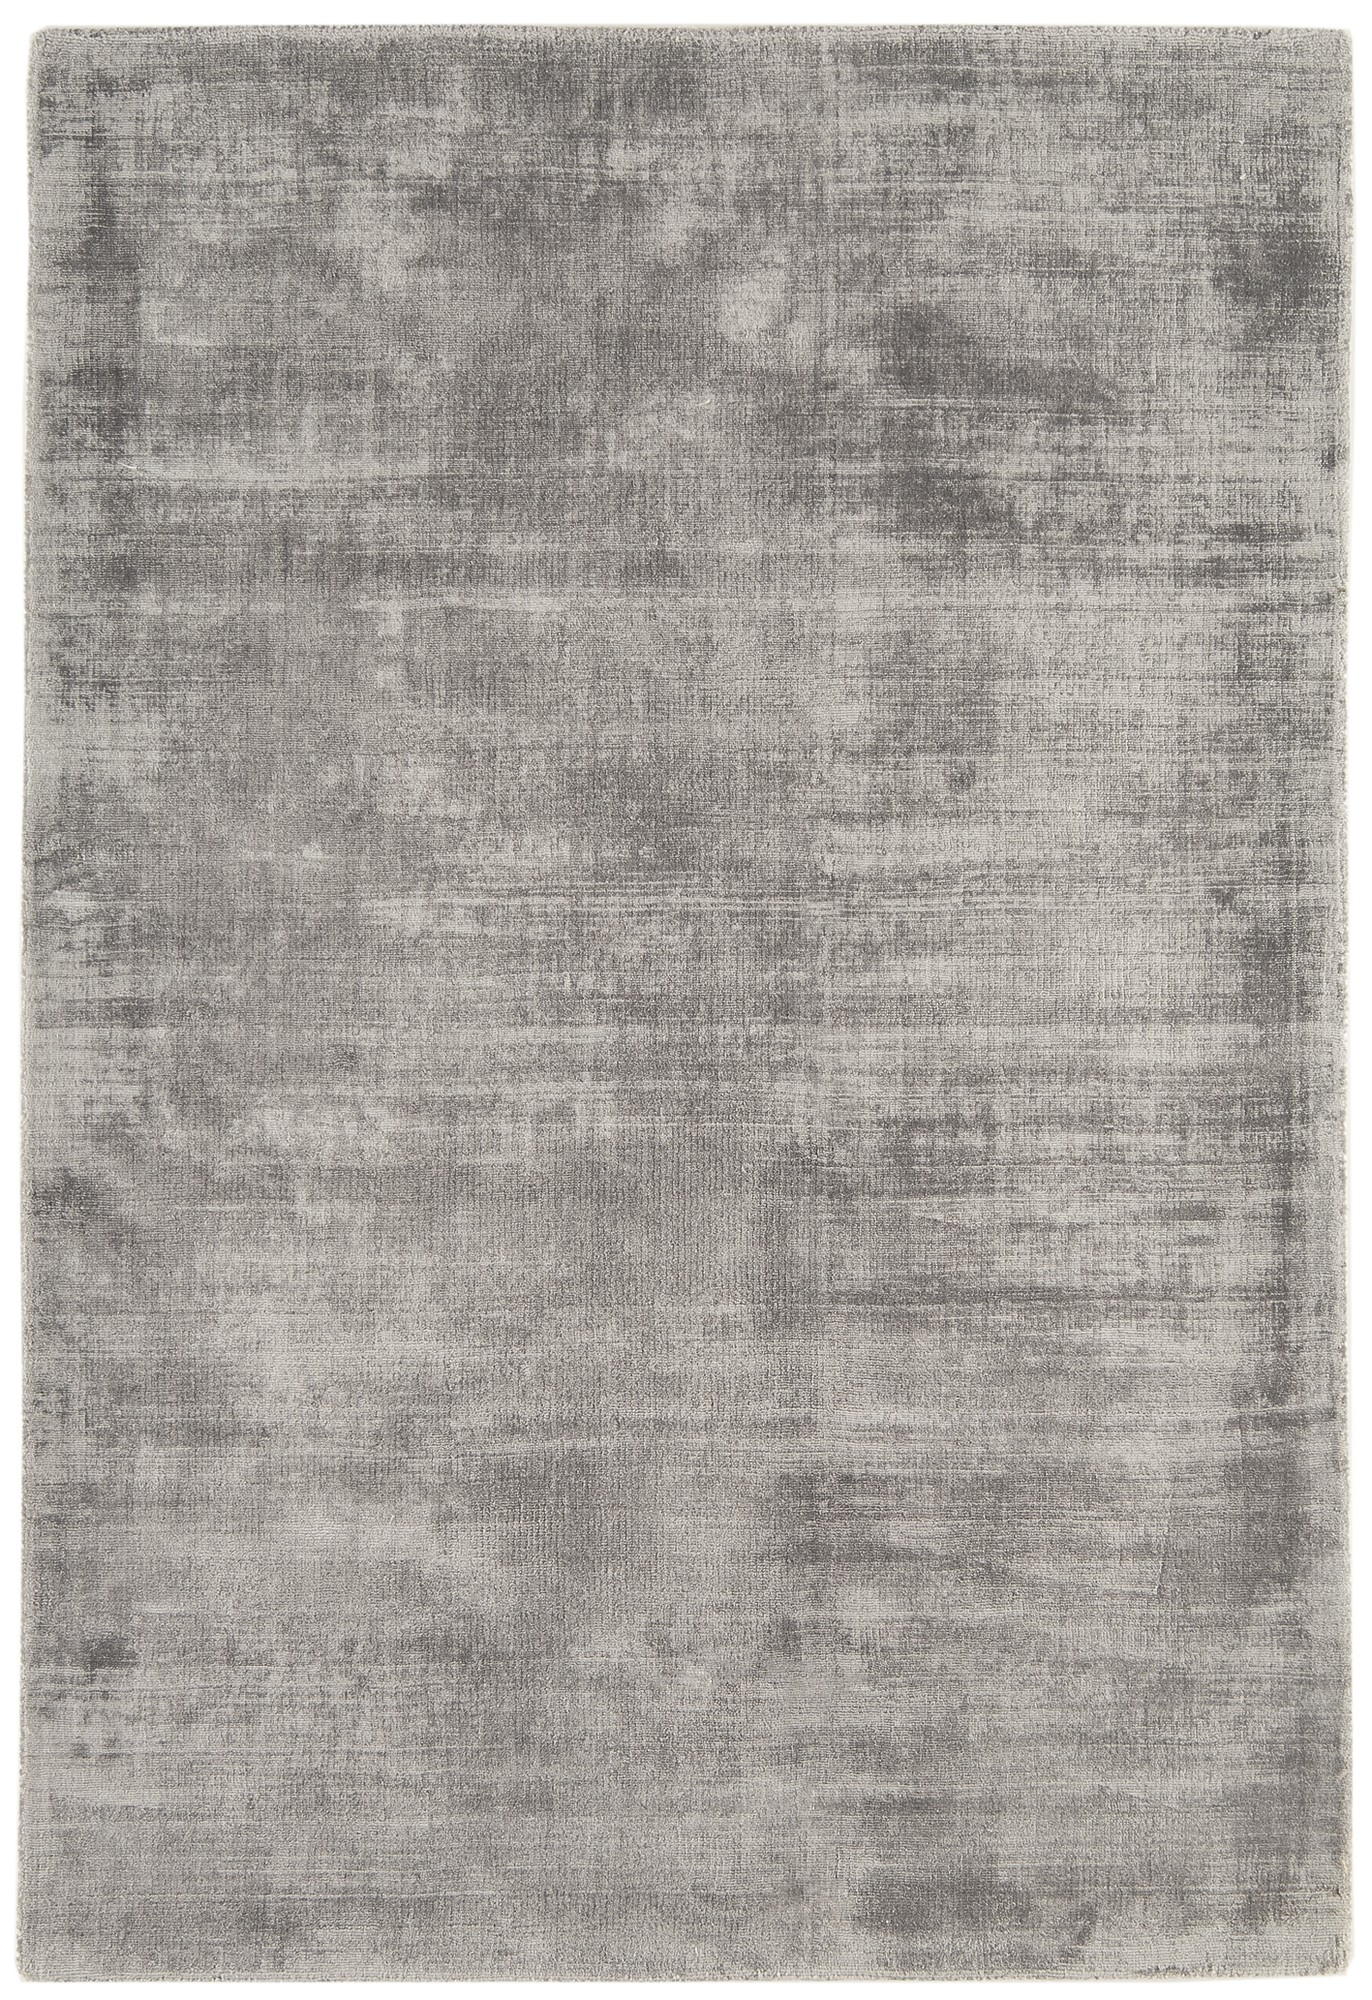 Grey Silver Rugs Home Decors Collection Intended For Silver Rugs (View 4 of 15)